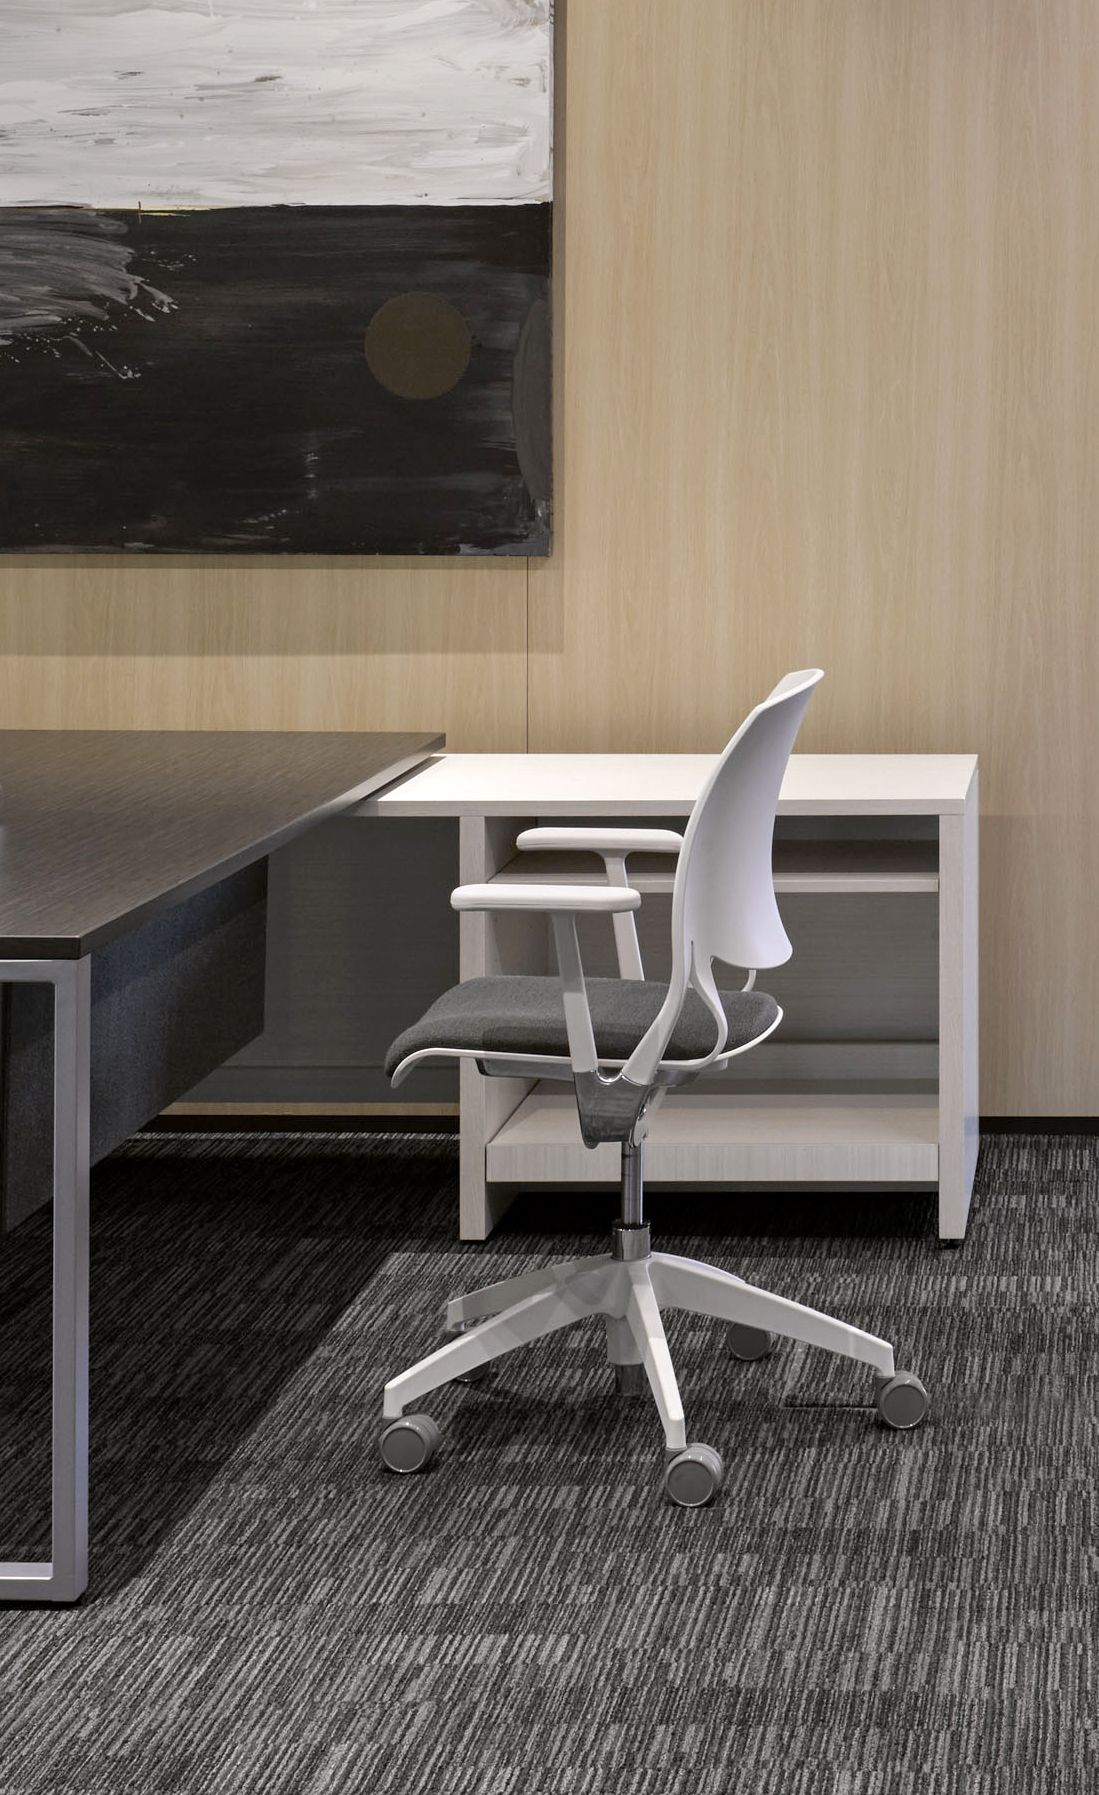 Novello Seating Series Features A Special Polymer Shell That Flexes Allowing The Seat To Glide Smoothly On A Concealed T Global Furniture Furniture Work Chair